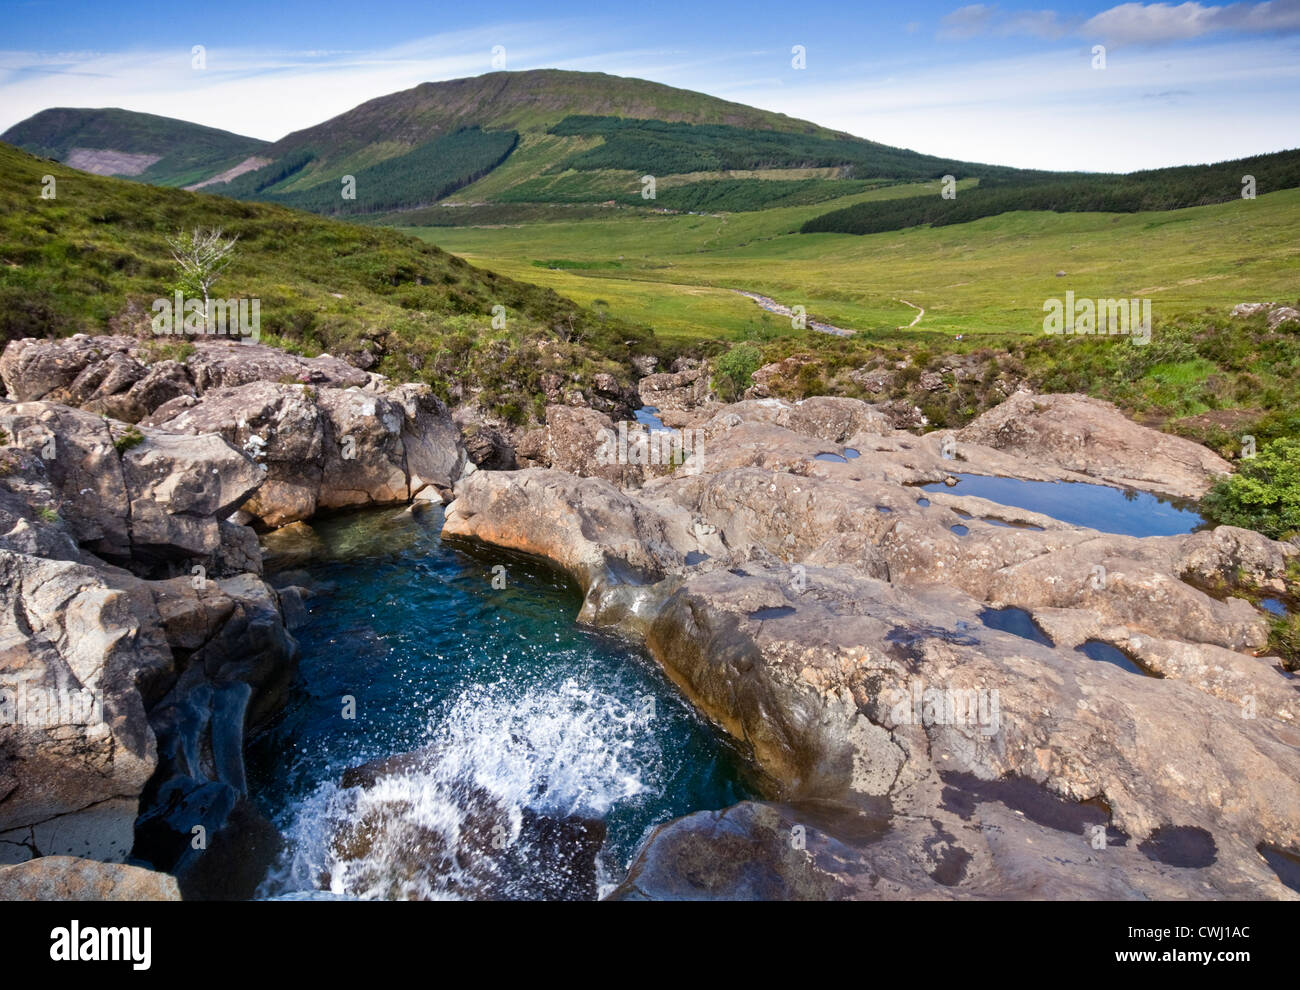 The mountains near the Fairy Pools at Glen Brittle on the Isle of Skye in Scotland, UK - Stock Image